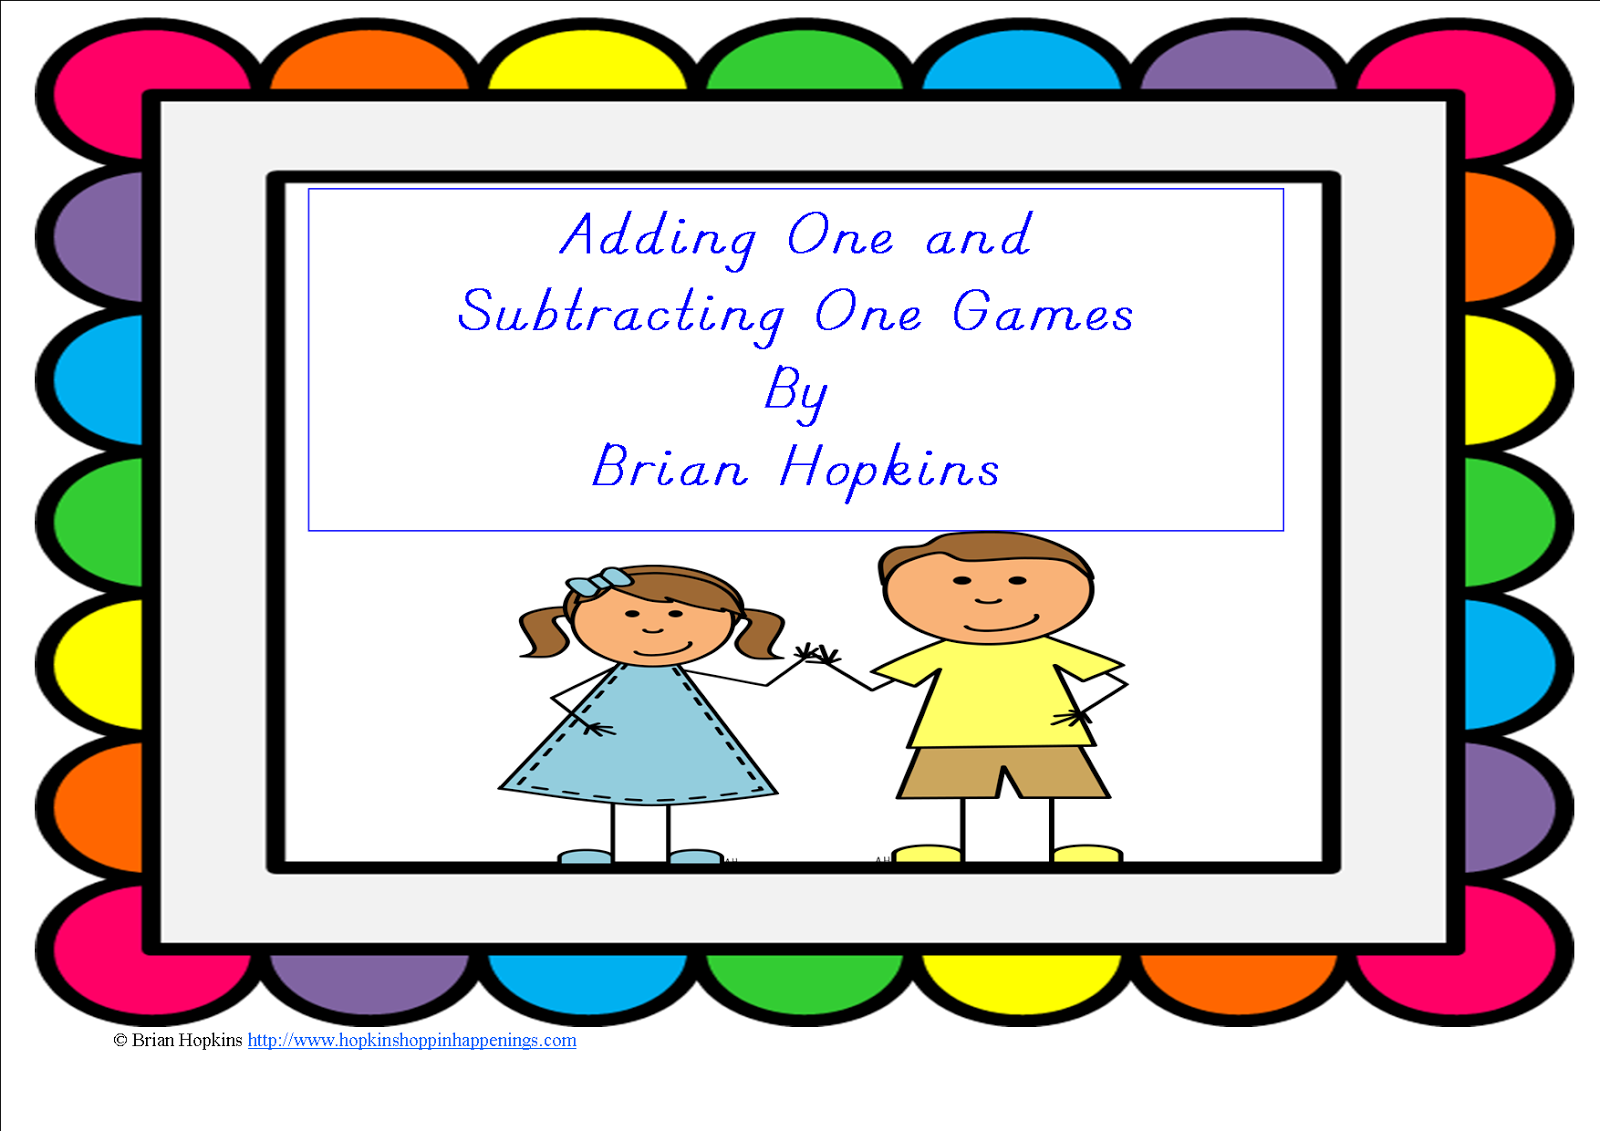 http://www.teacherspayteachers.com/Product/FREEBIE-Adding-One-one-more-Subtracting-One-One-Less-Games-668935